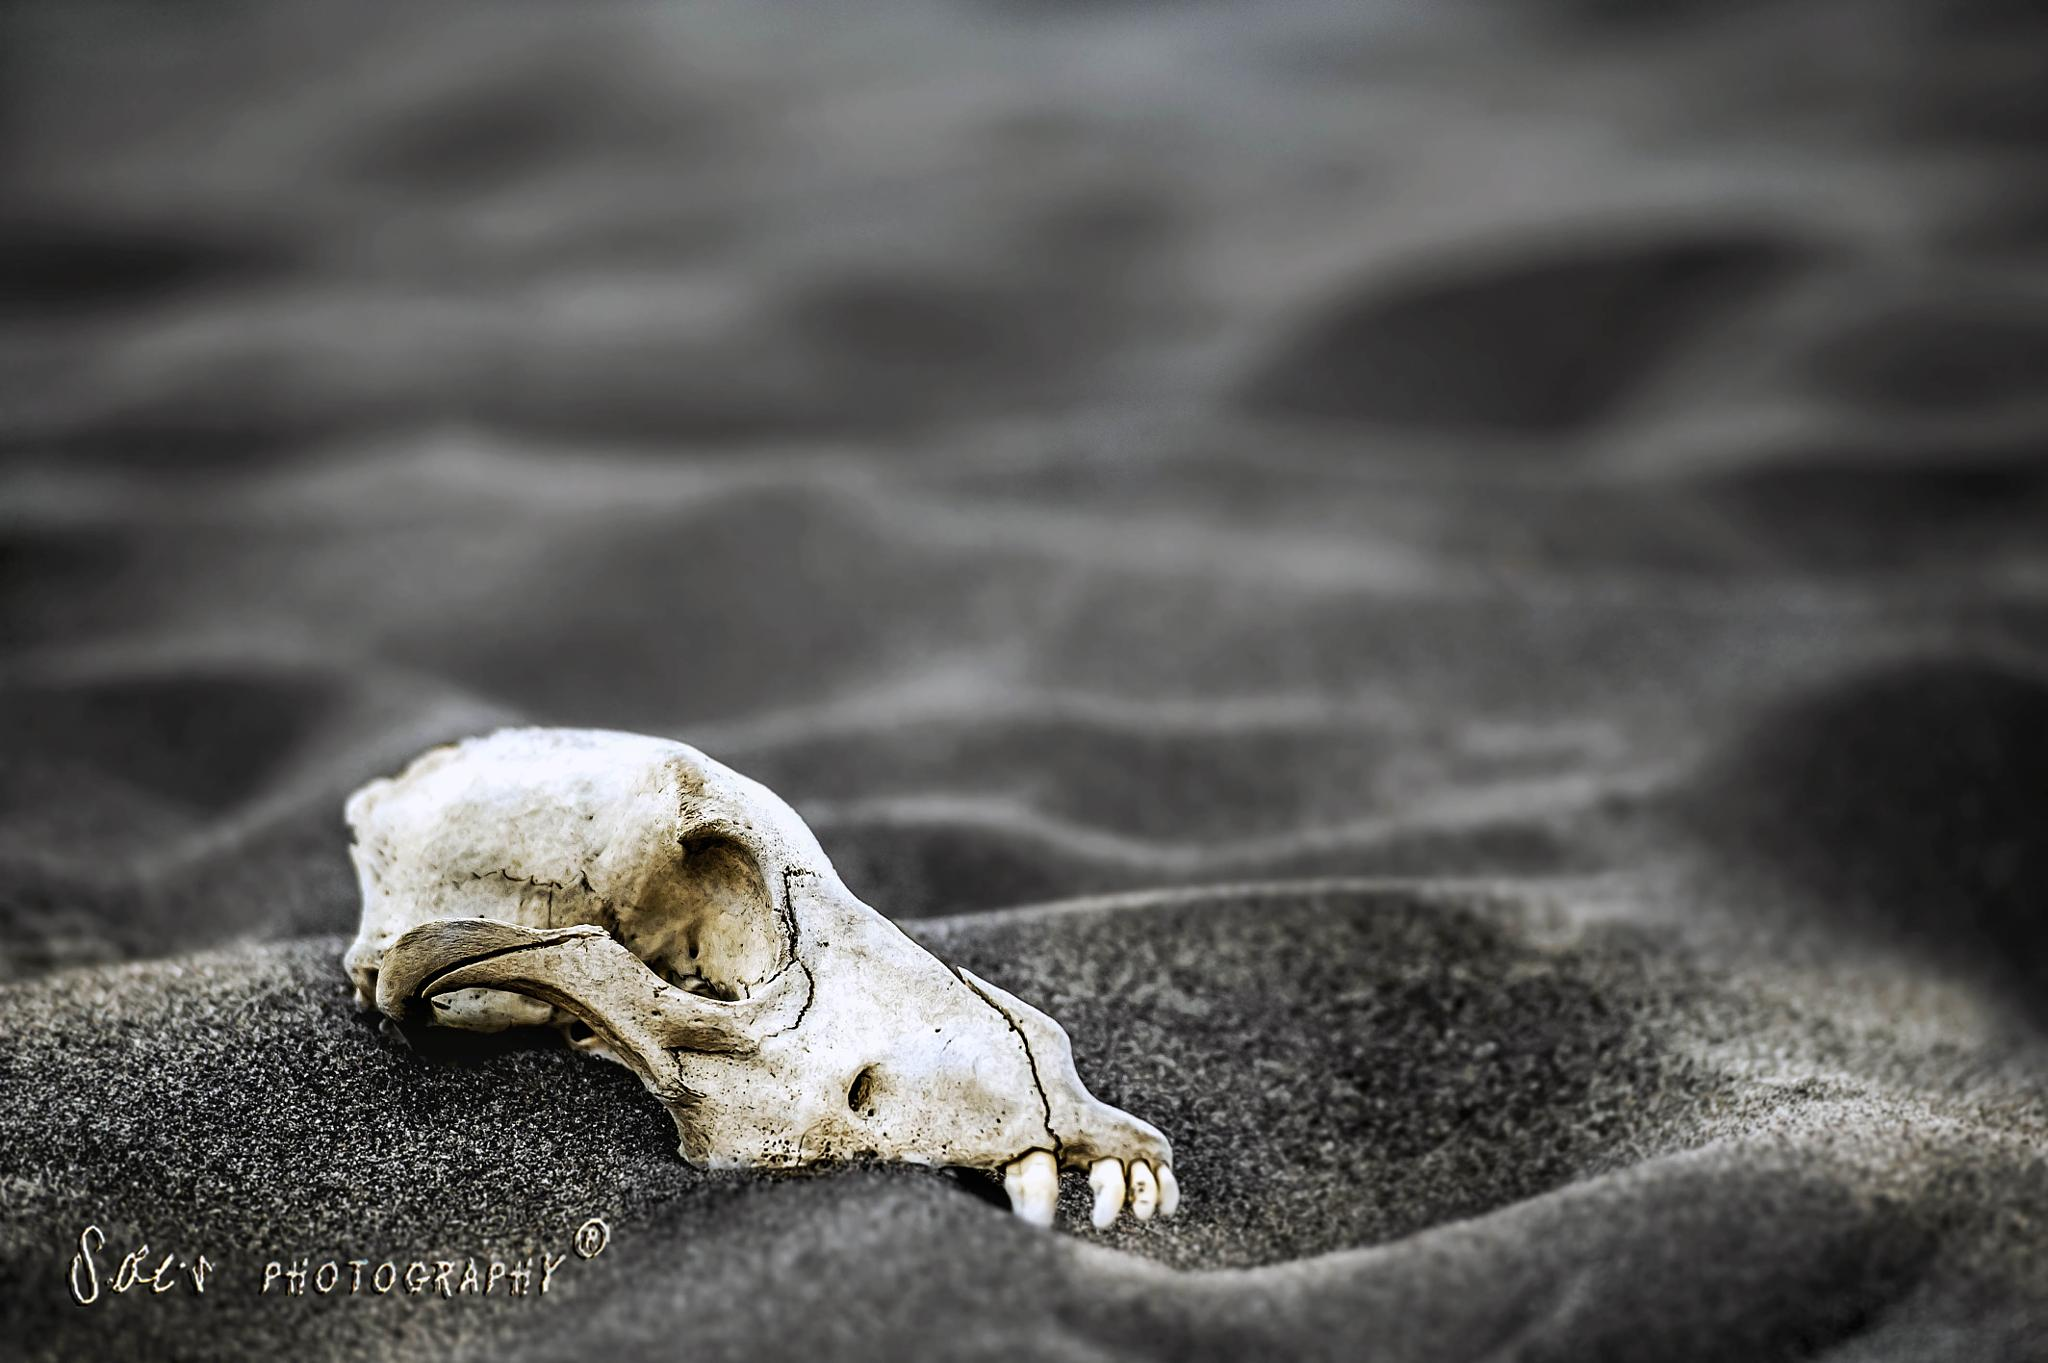 DUST & BONES by Susilo